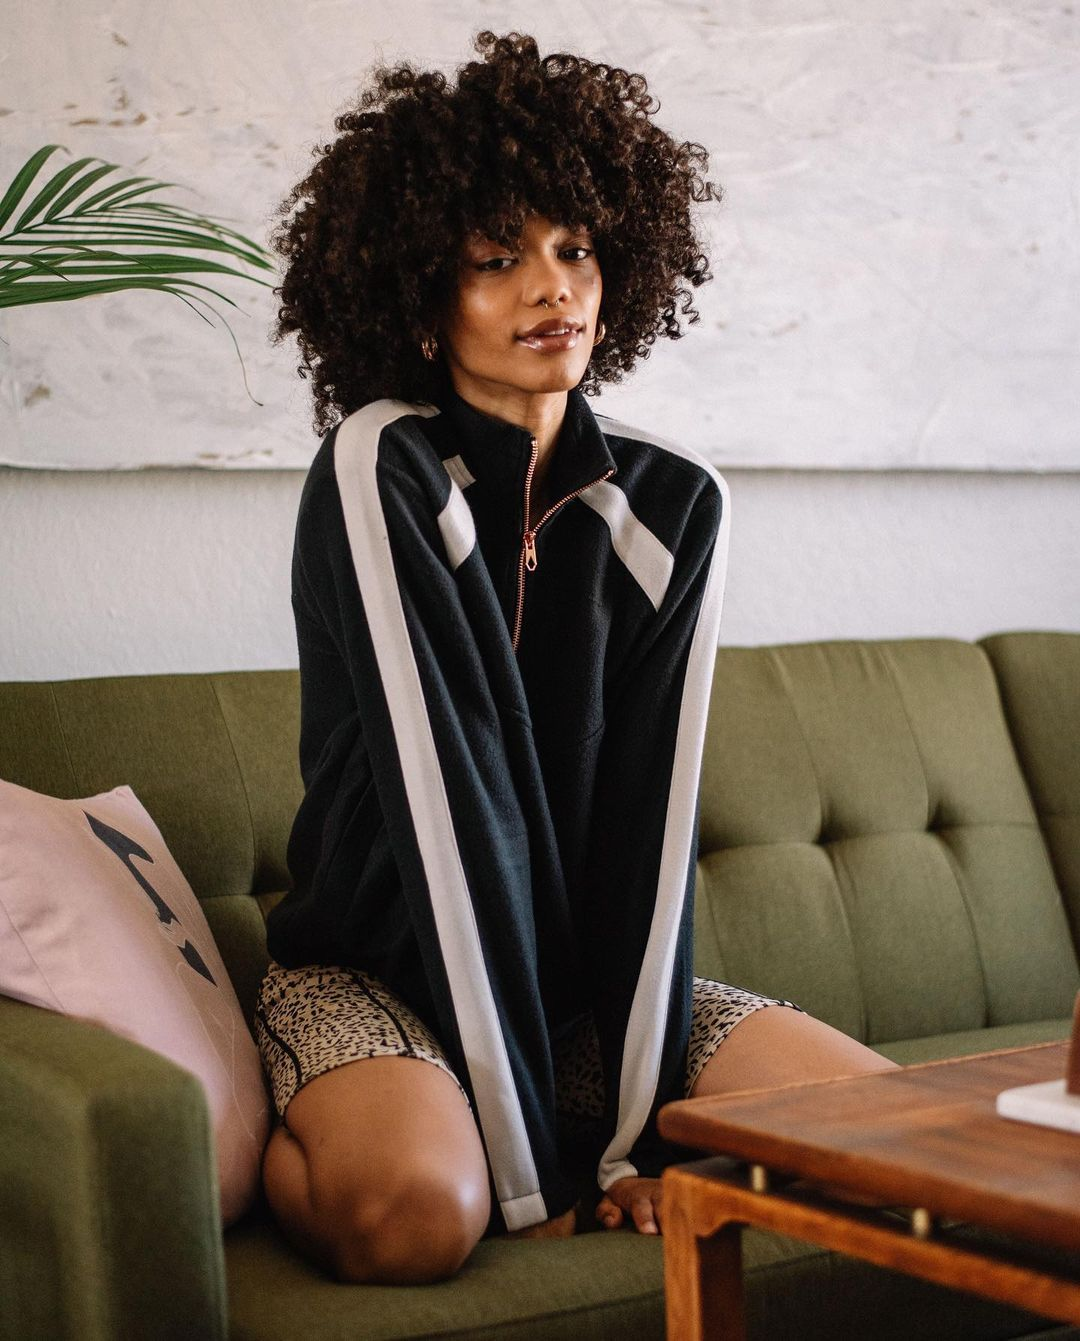 Woman posing on couch in oversized jacket